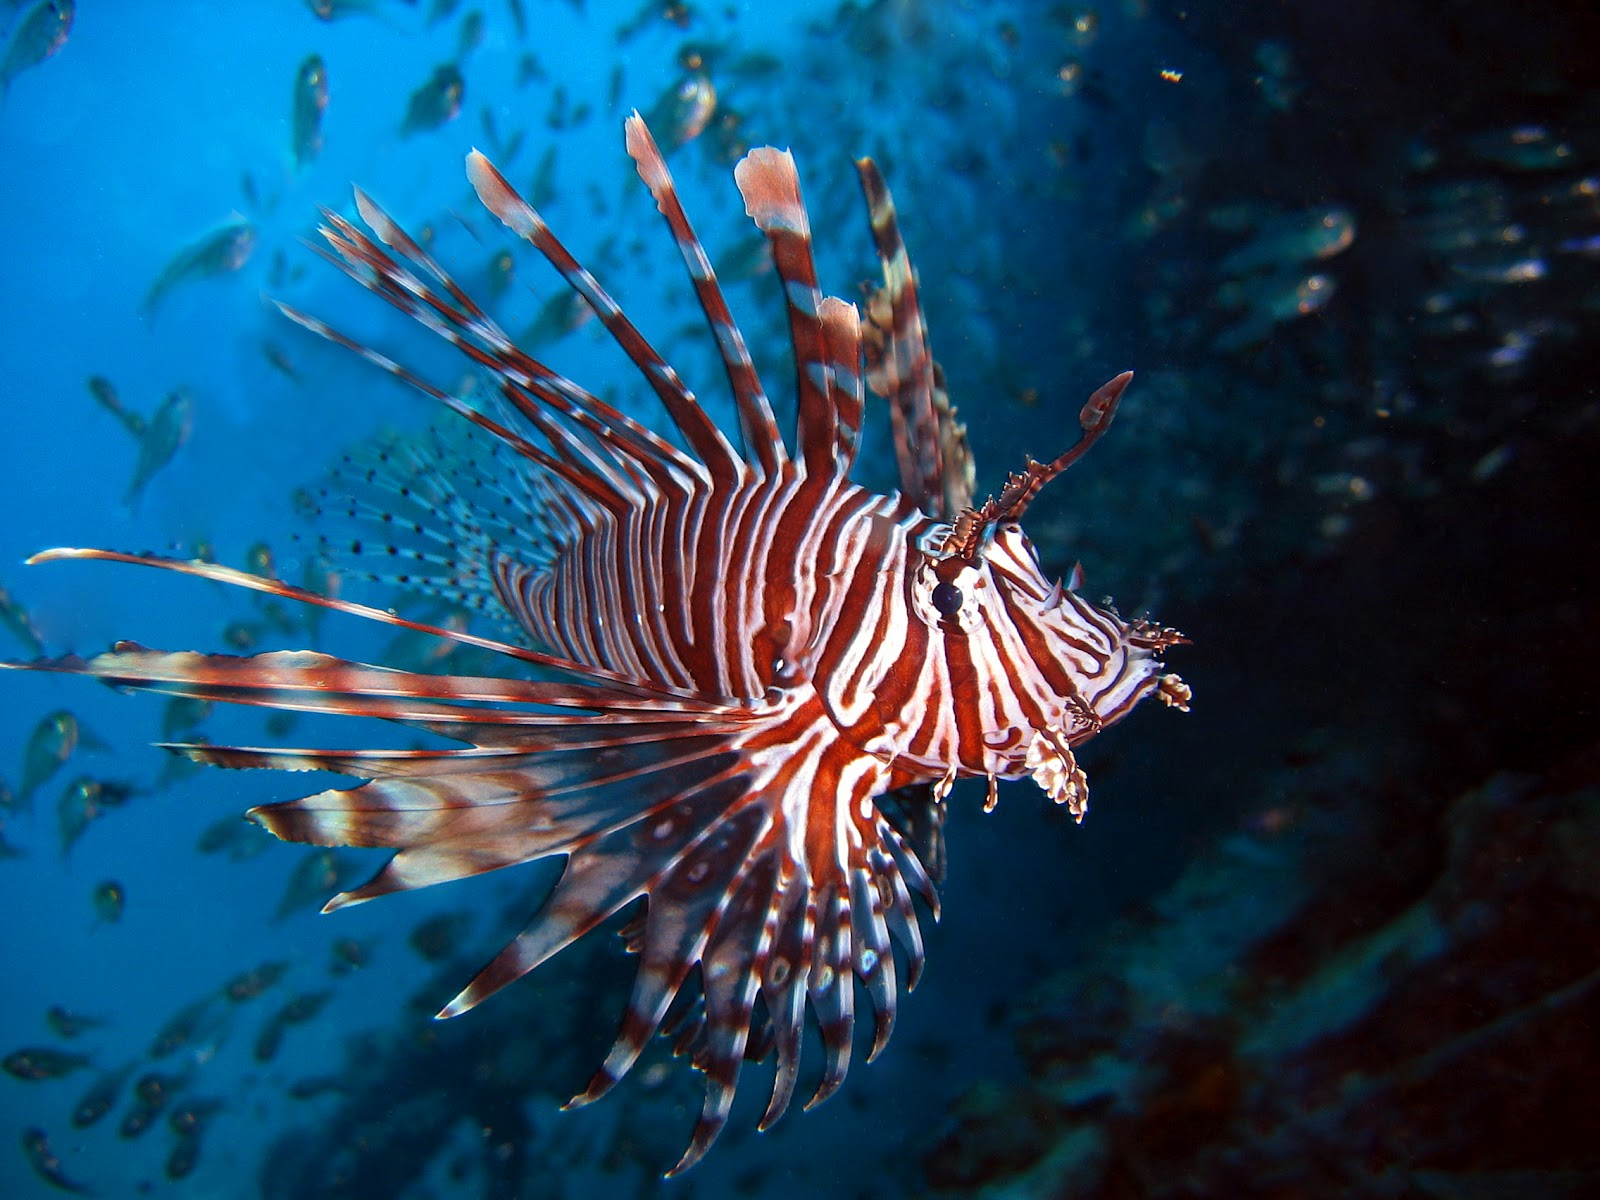 ~Cocoafang's Randomness Blog~: Lionfish fin armor